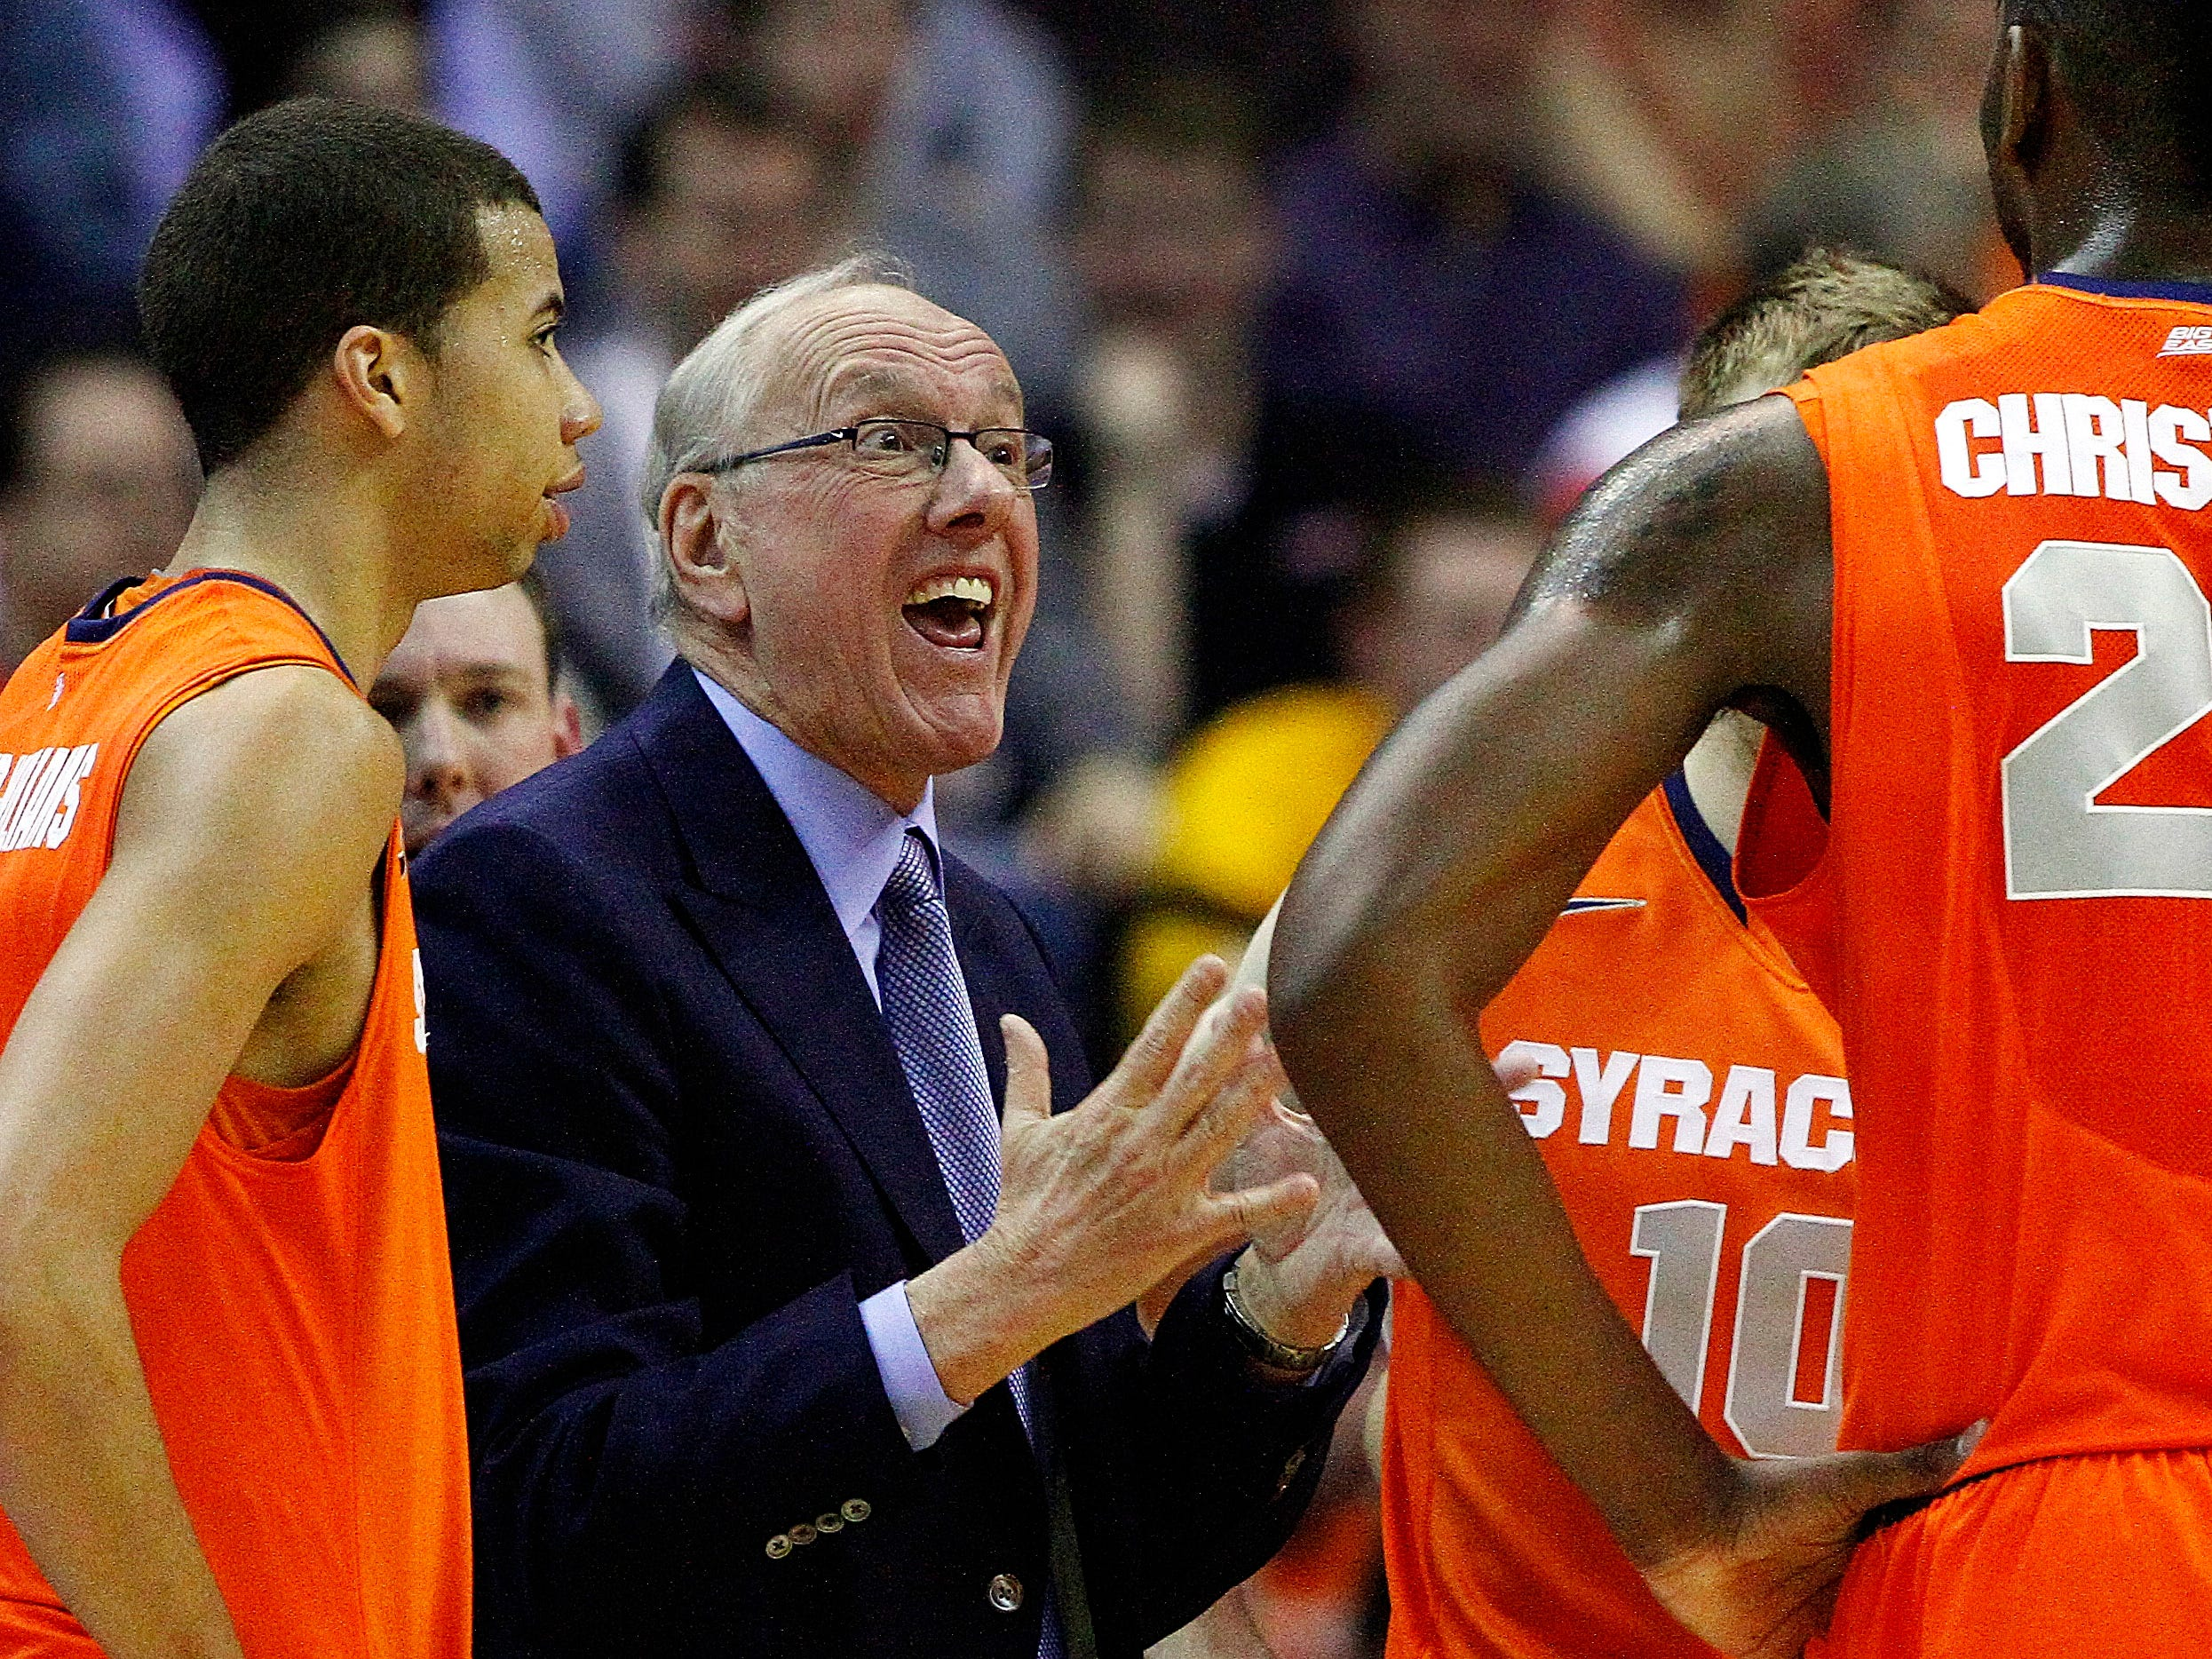 2013: Syracuse head coach Jim Boeheim talks to his players during a timeout in the first half of the East Regional final in the NCAA men's college basketball tournament against Marquette, Saturday, March 30, 2013, in Washington. (AP Photo/Mark Tenally)